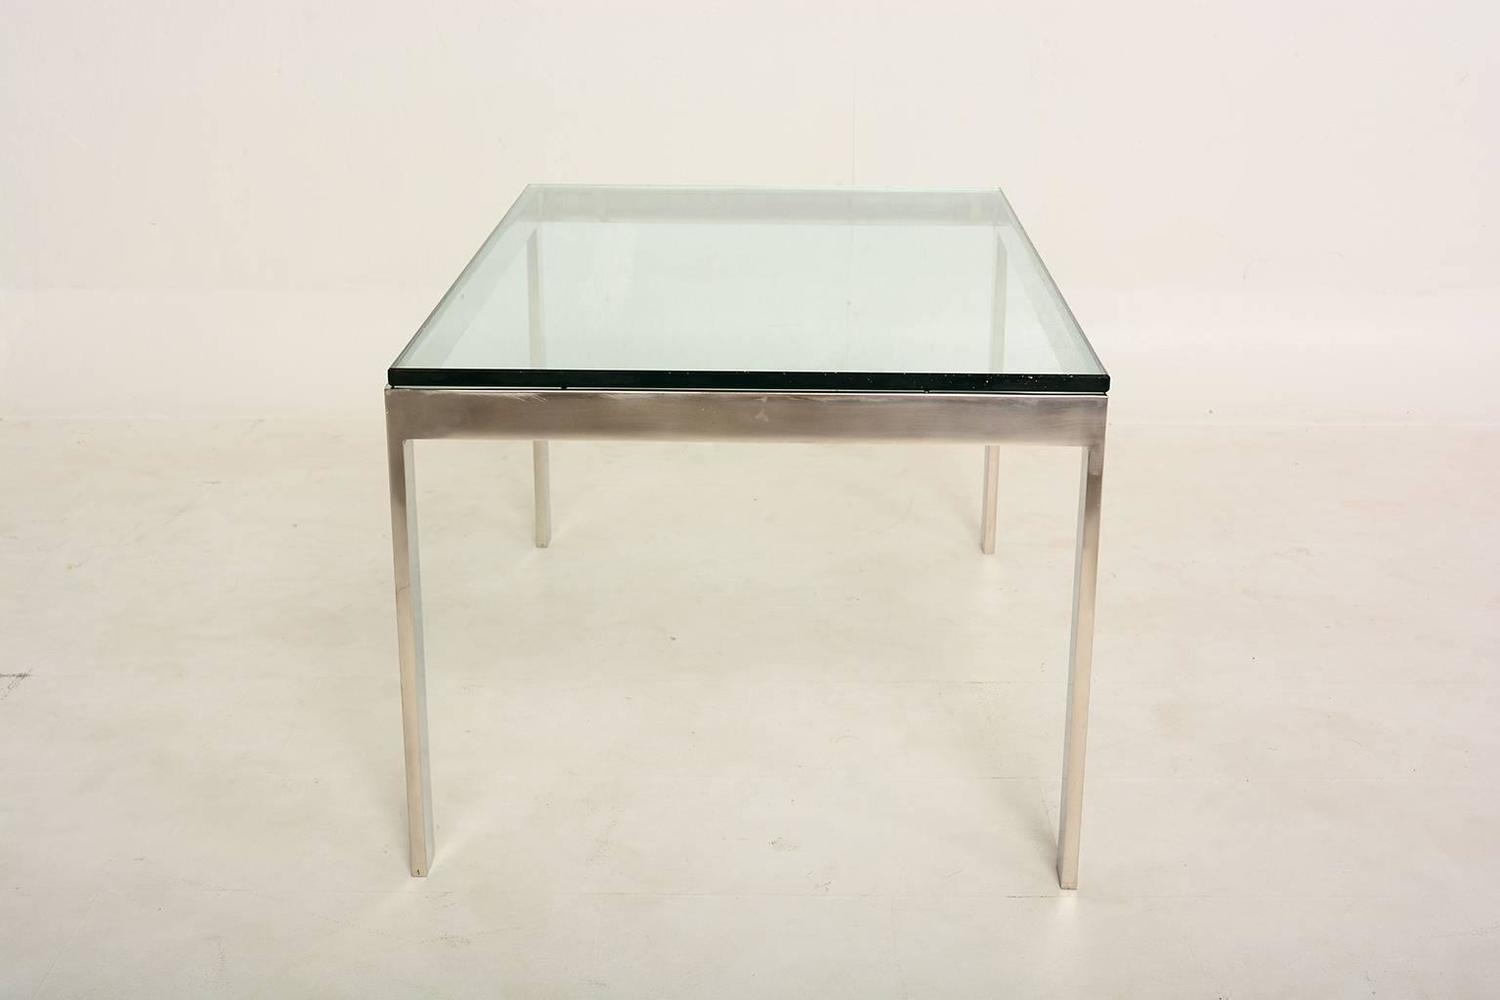 Stainless Steel And Glass Coffee Table For Sale At 1stdibs